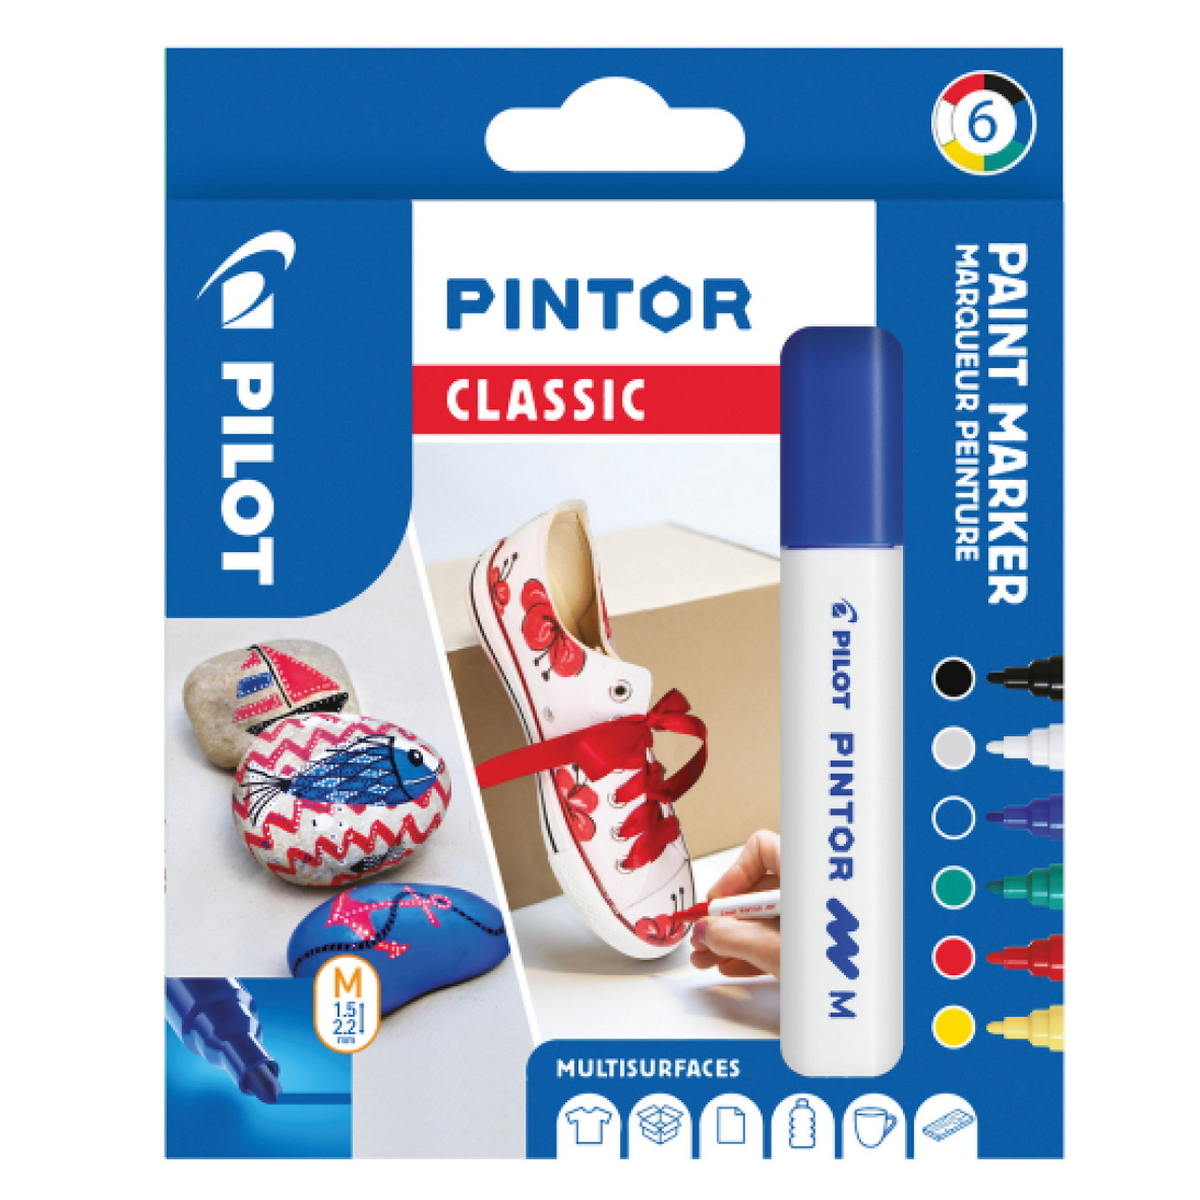 Pilot Pintor M Classic 6-pack